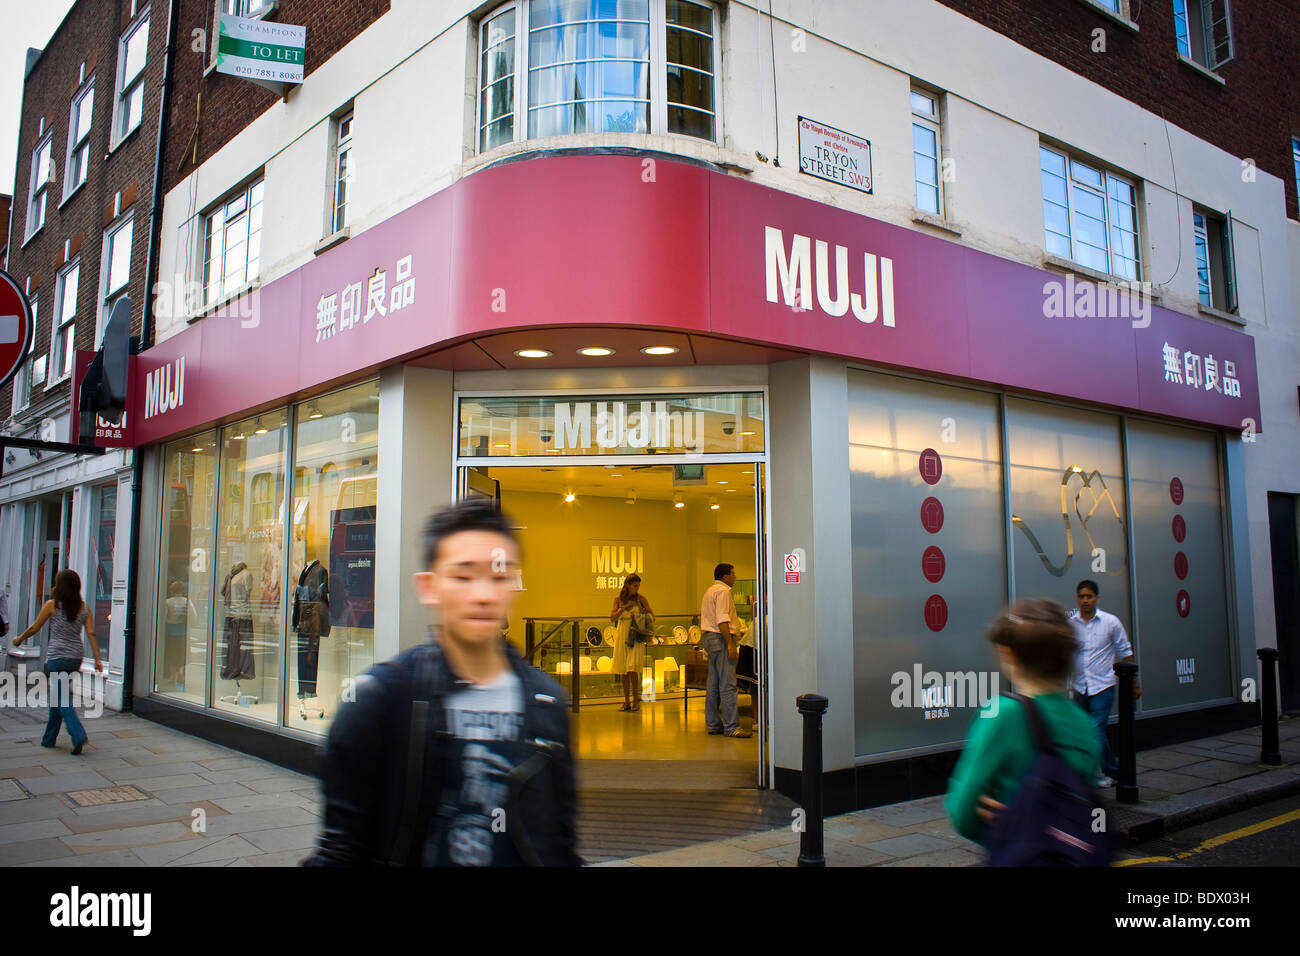 Muji store shop front seen from King's Road, London - Stock Image